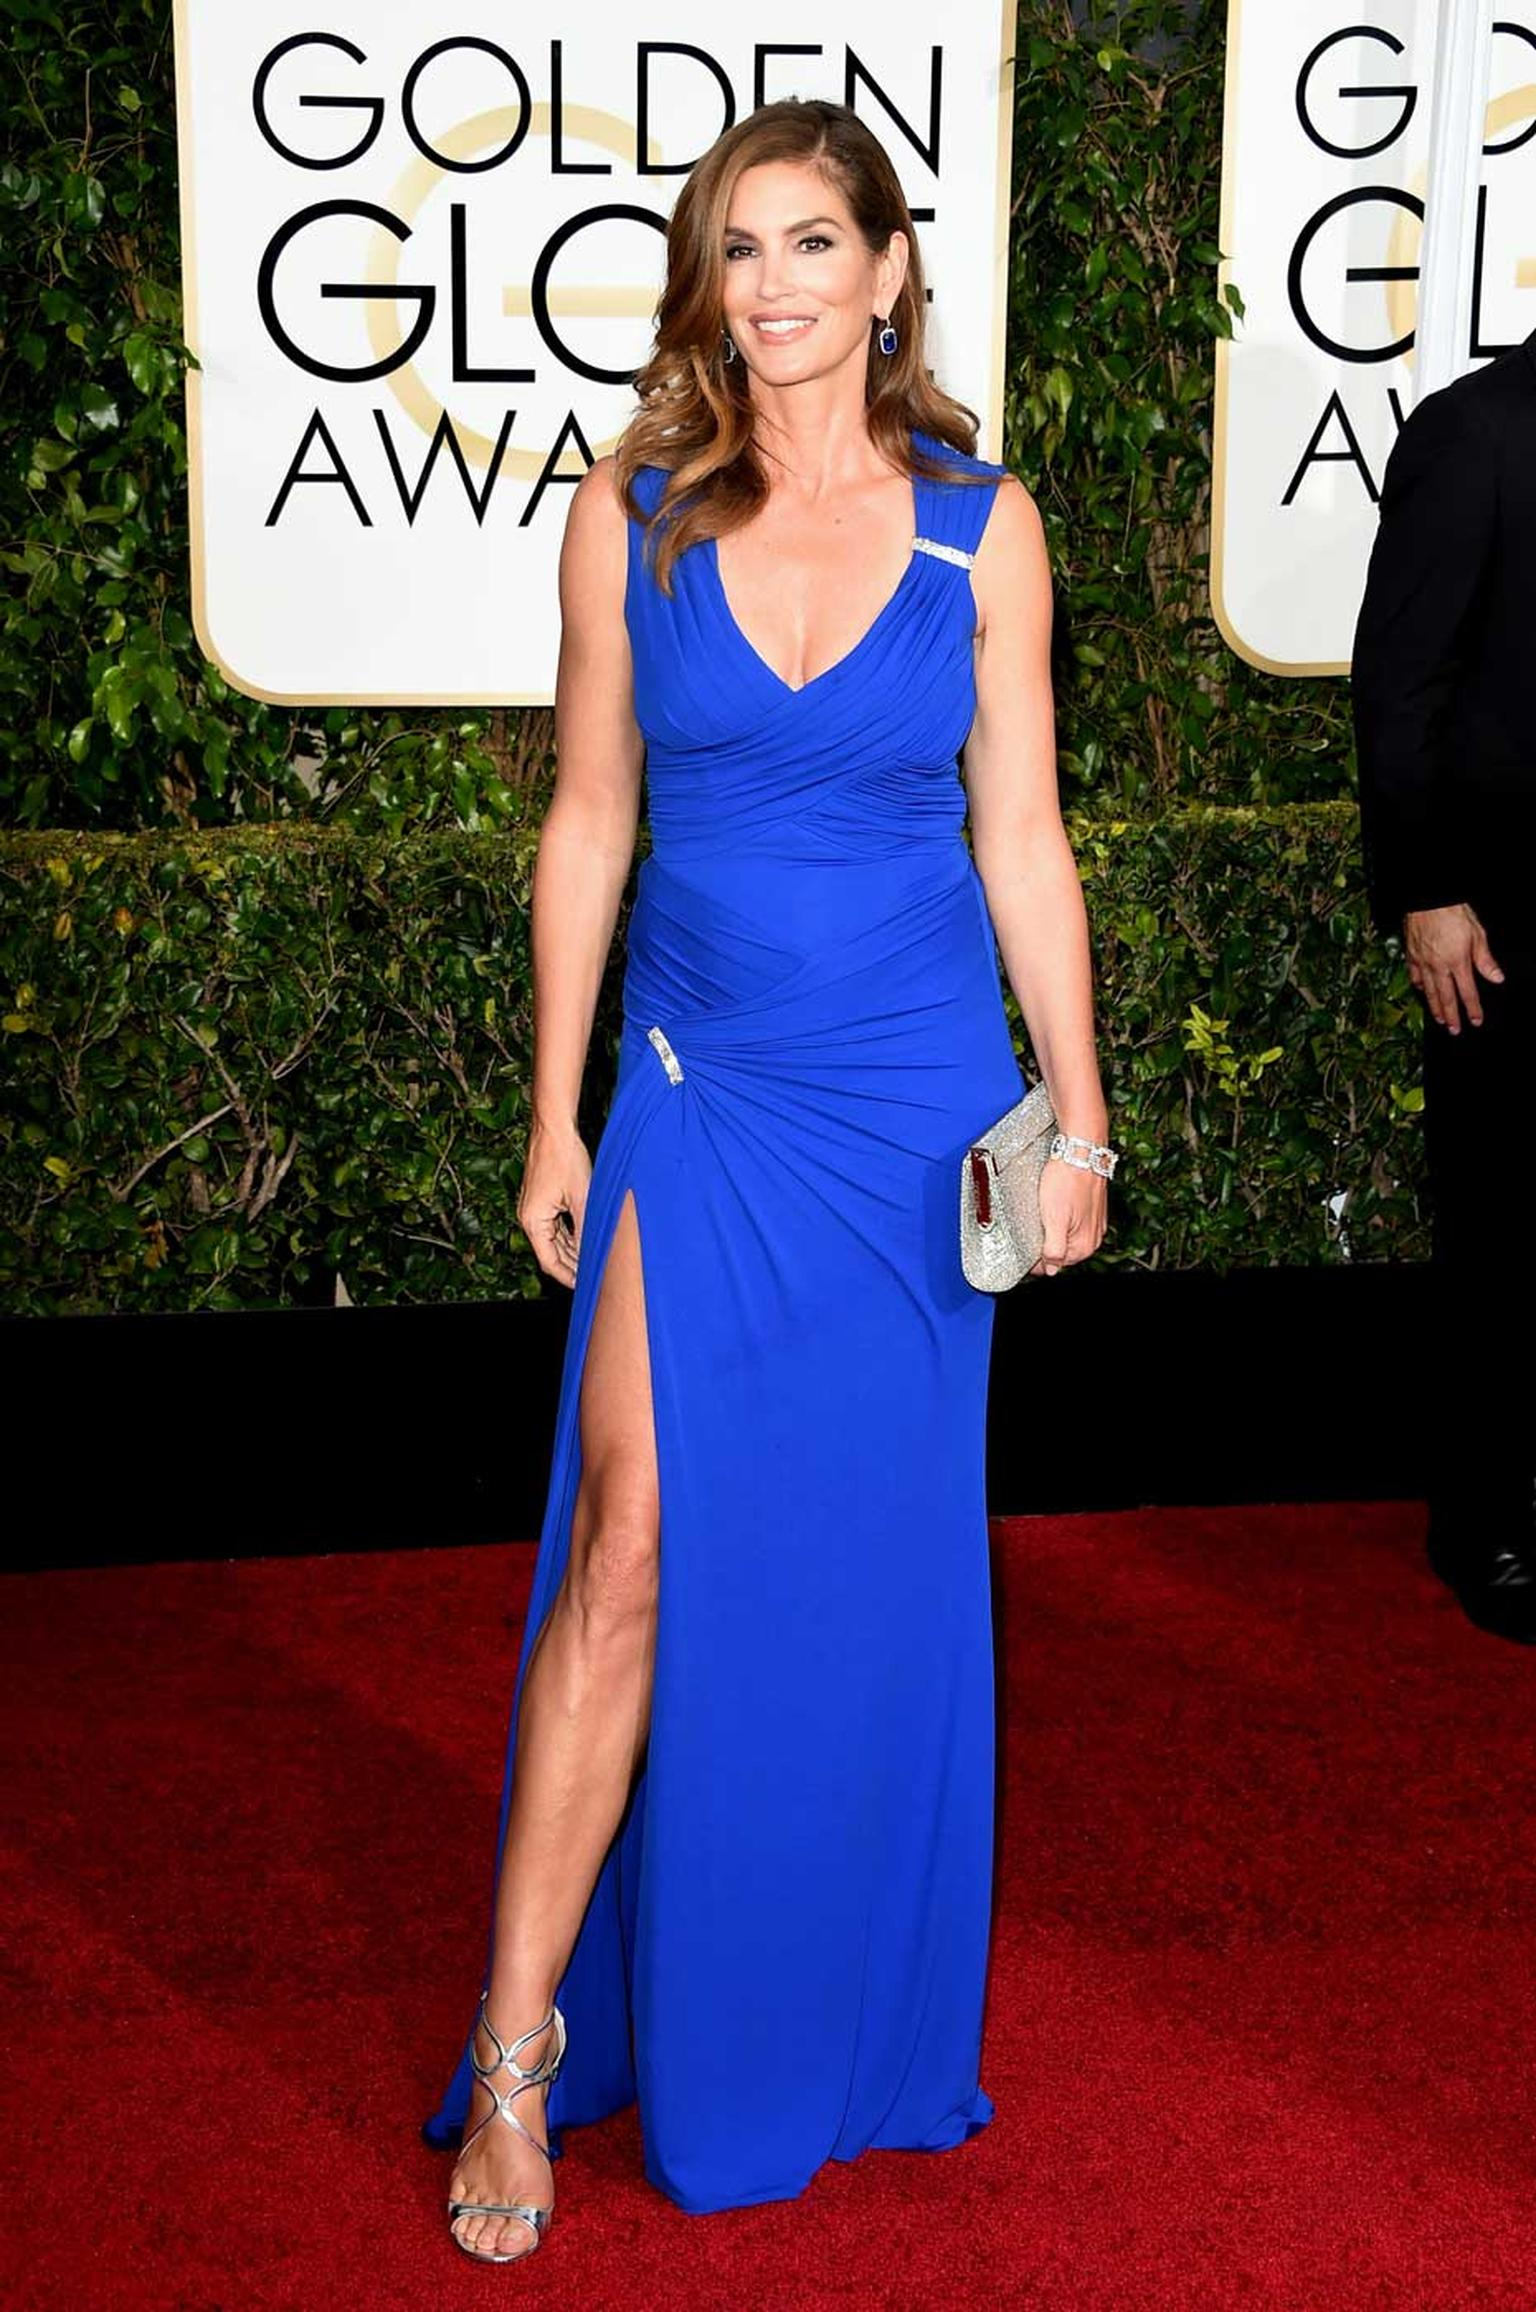 Cindy Crawford wore a pair of platinum earrings with micropavé diamonds and a cushion-cut sapphire by Harry Winston to the 2015 Golden Globe Awards.